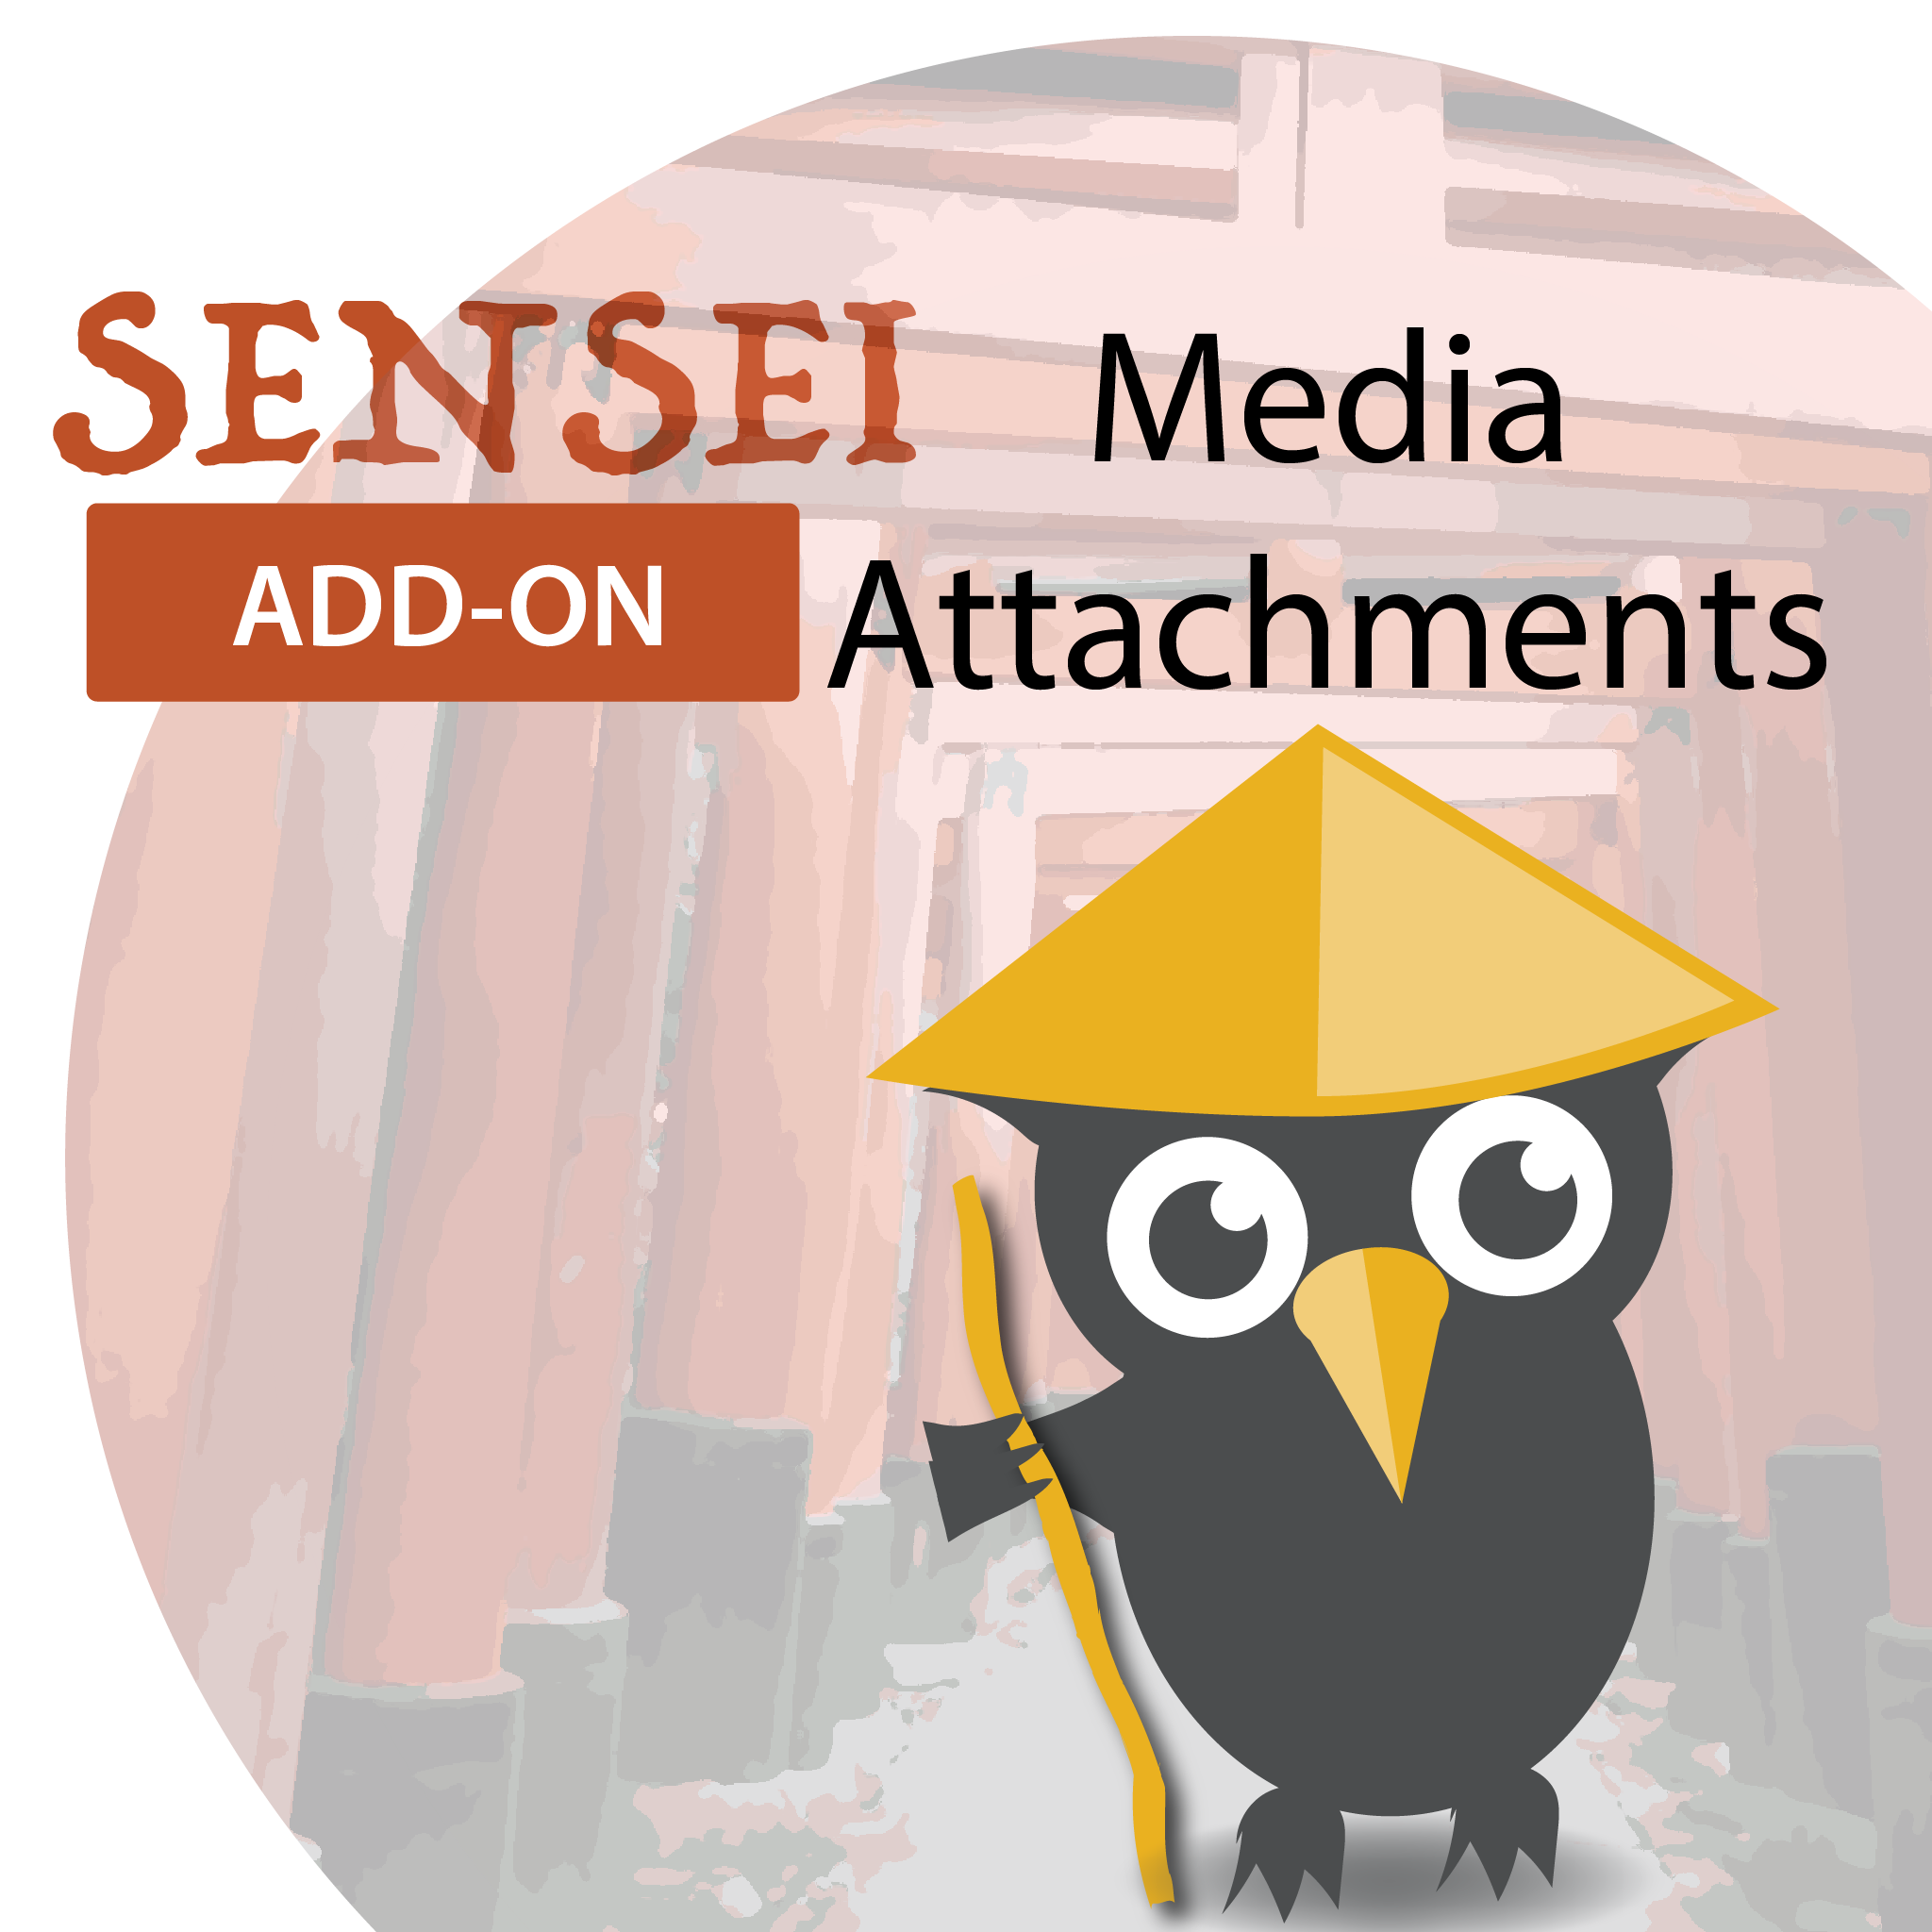 WooCommerce Sensei LMS Media Attachments Add-On